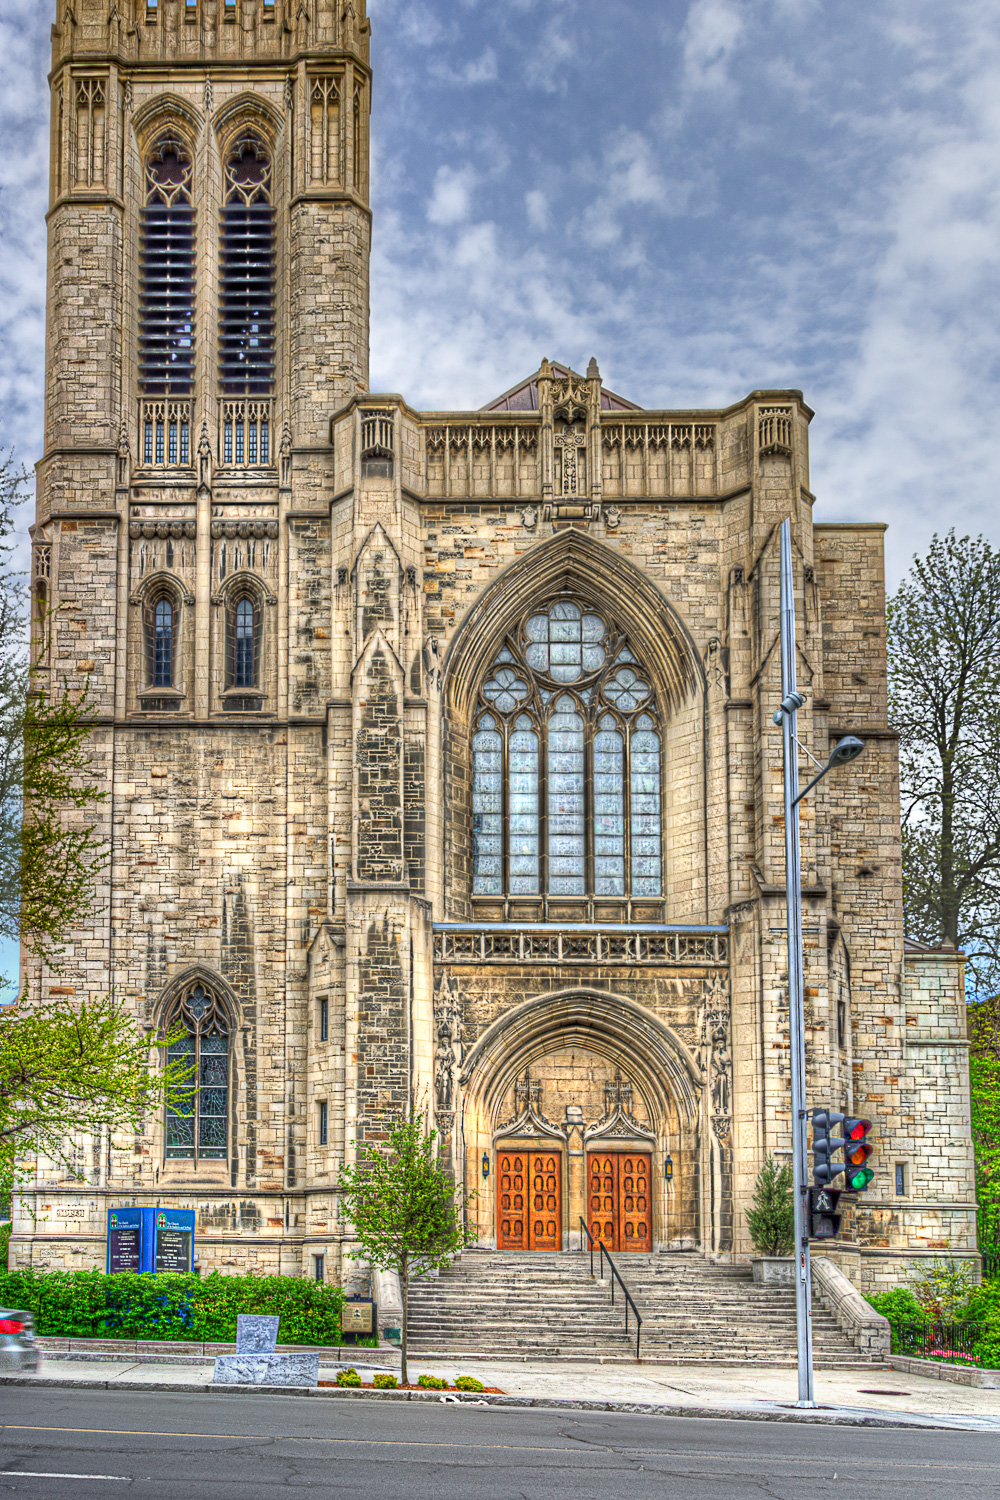 20120512_Montreal in HDR__MG_6466_65_63_62_60_59_58_X-CE.jpg